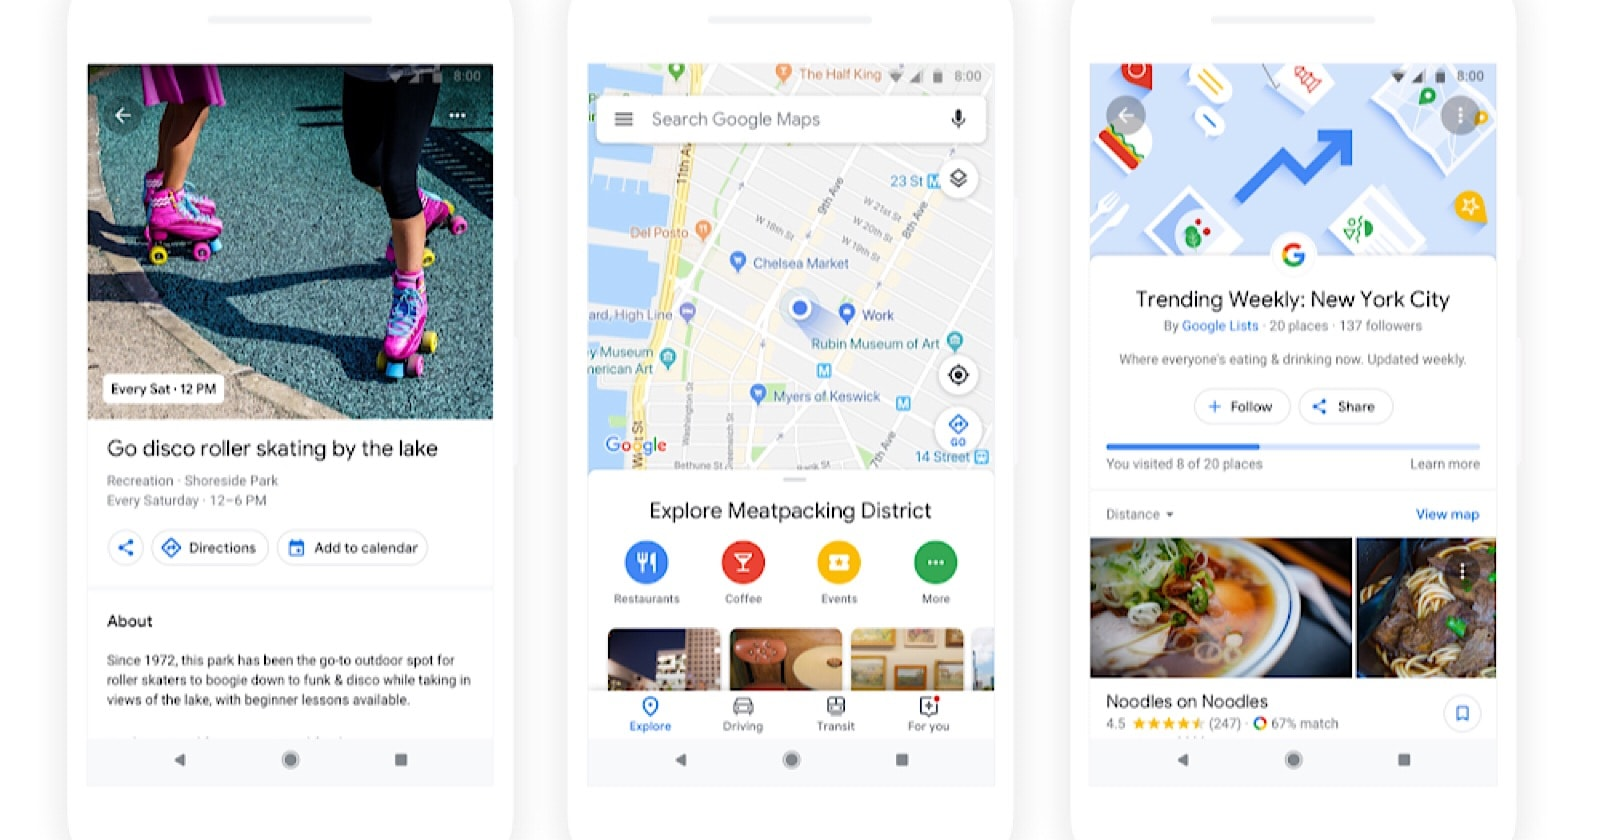 Google Maps to Deliver More Personal Recommendations Based on Machine Learning by @MattGSouthern